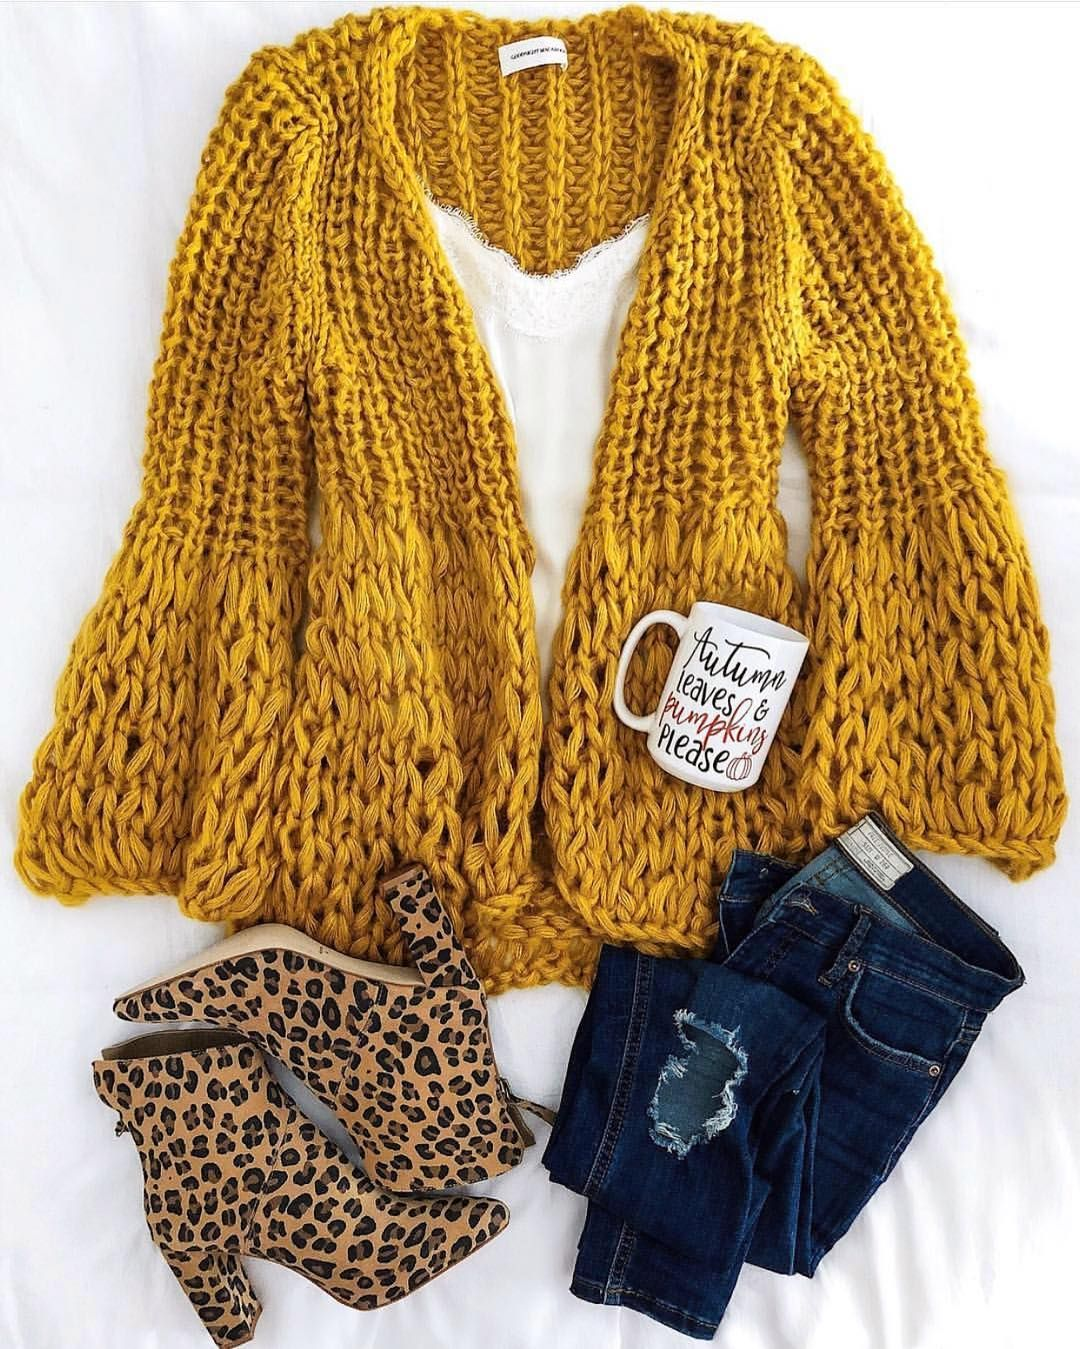 This mustard #fall color!???? Shop the Lillibeth cardigan now via link in bio! Available in 3 colors! Use code COZY40 to take 40% off everything???? @racheltimmerman #lovegm #sweaterweather #outfitinspo #ootd #americanstyle #fallfashion #ootd